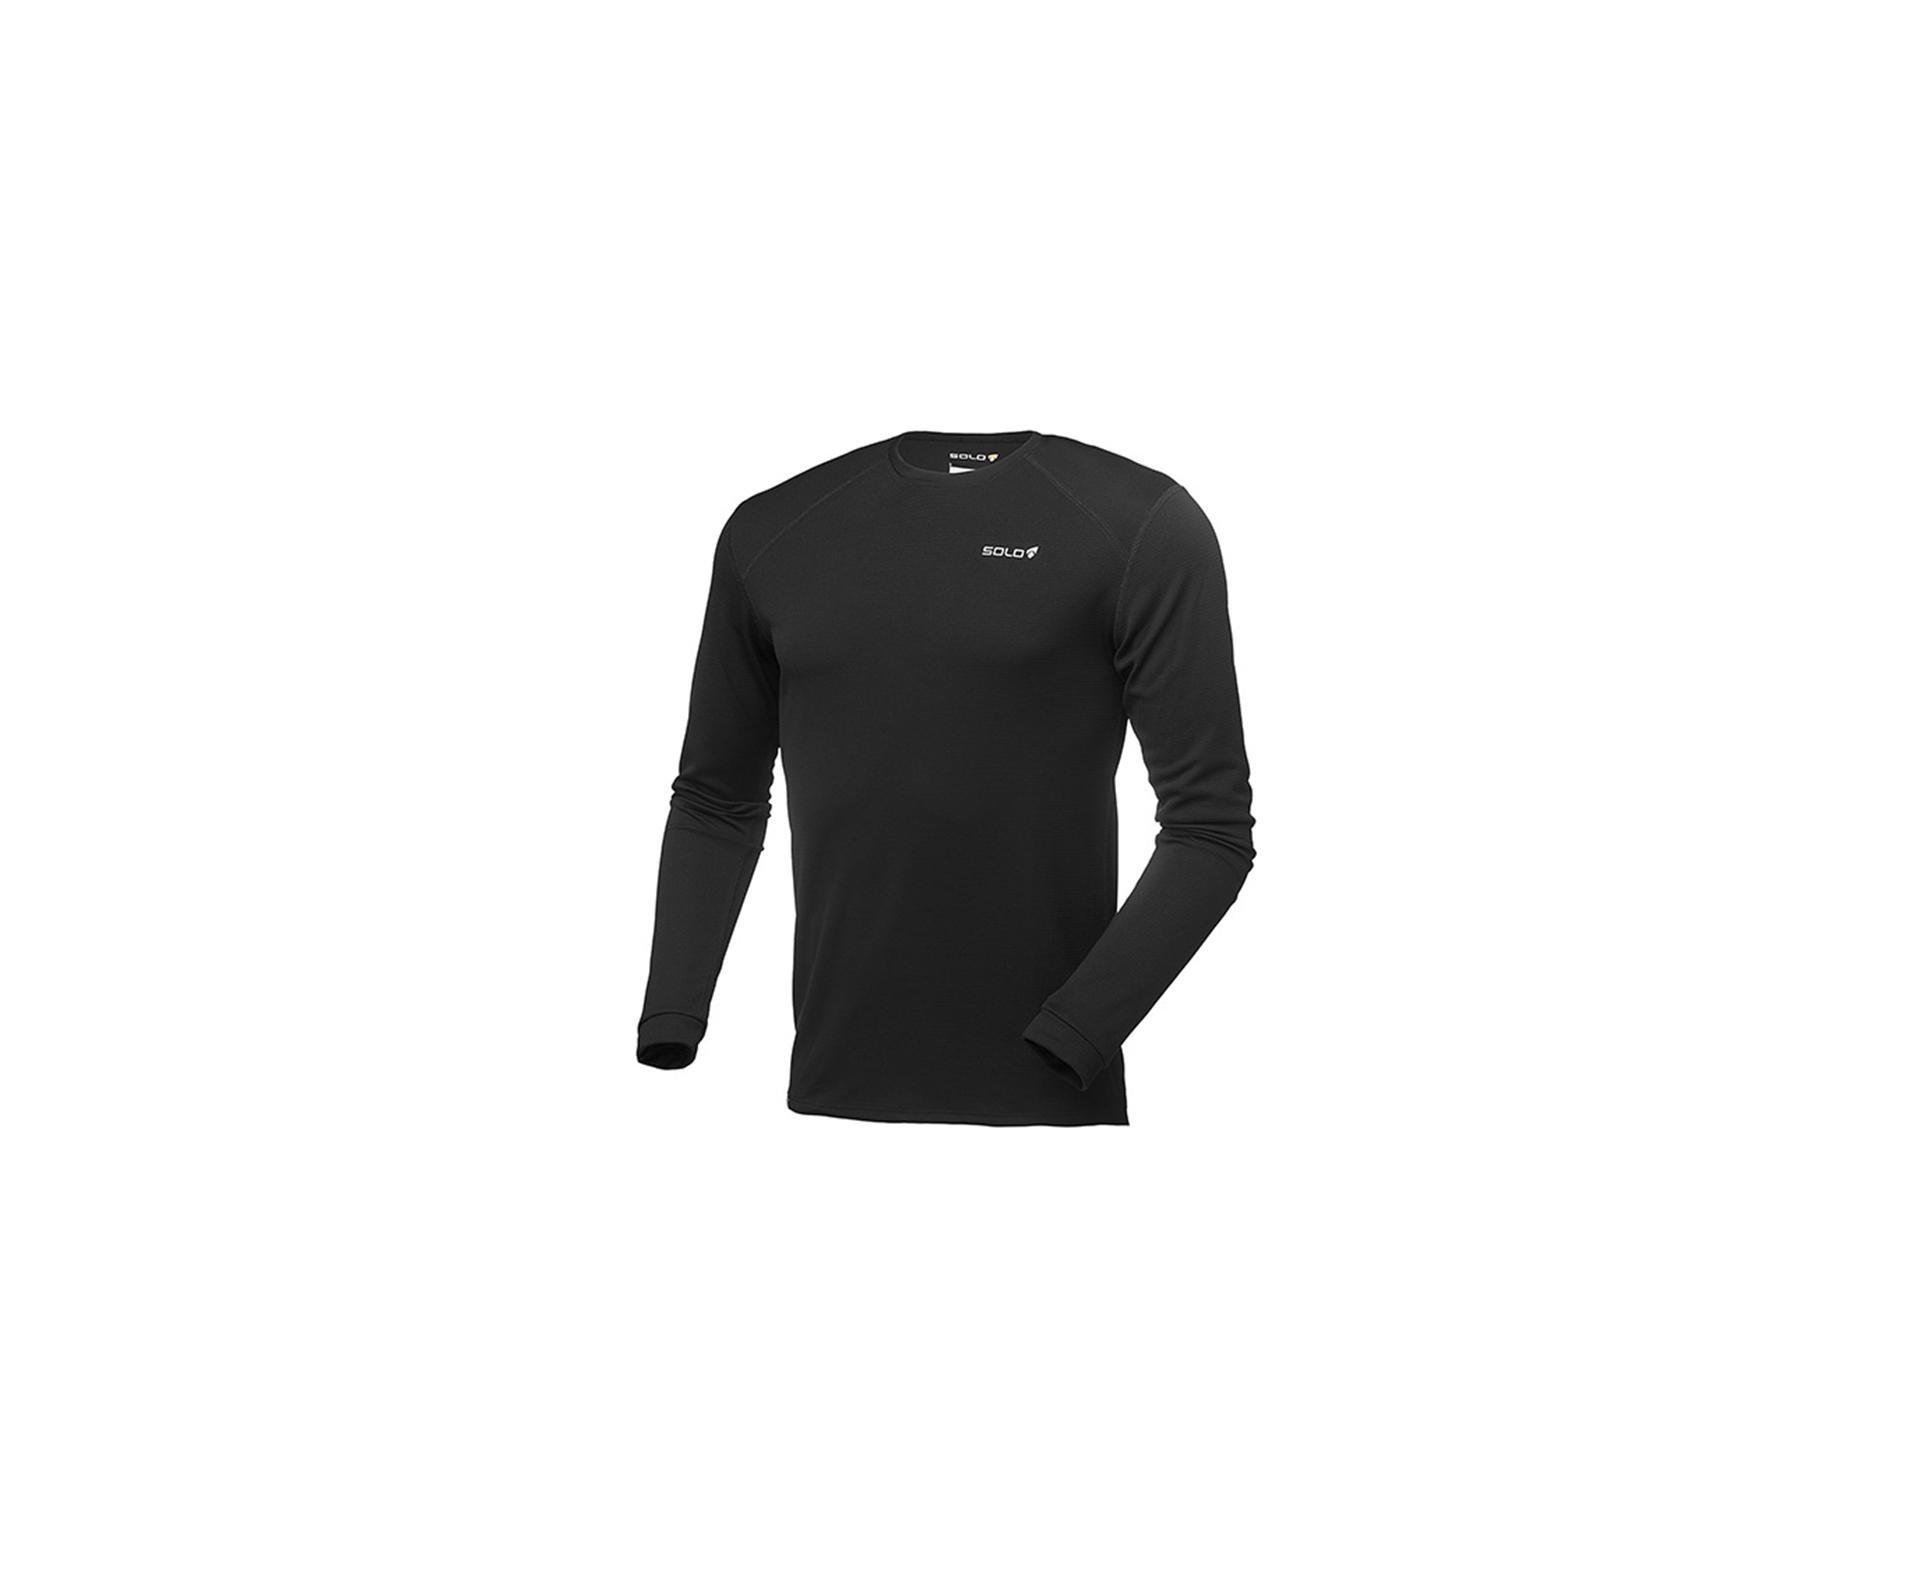 Blusa X-thermo Air Ts - Preto - Solo